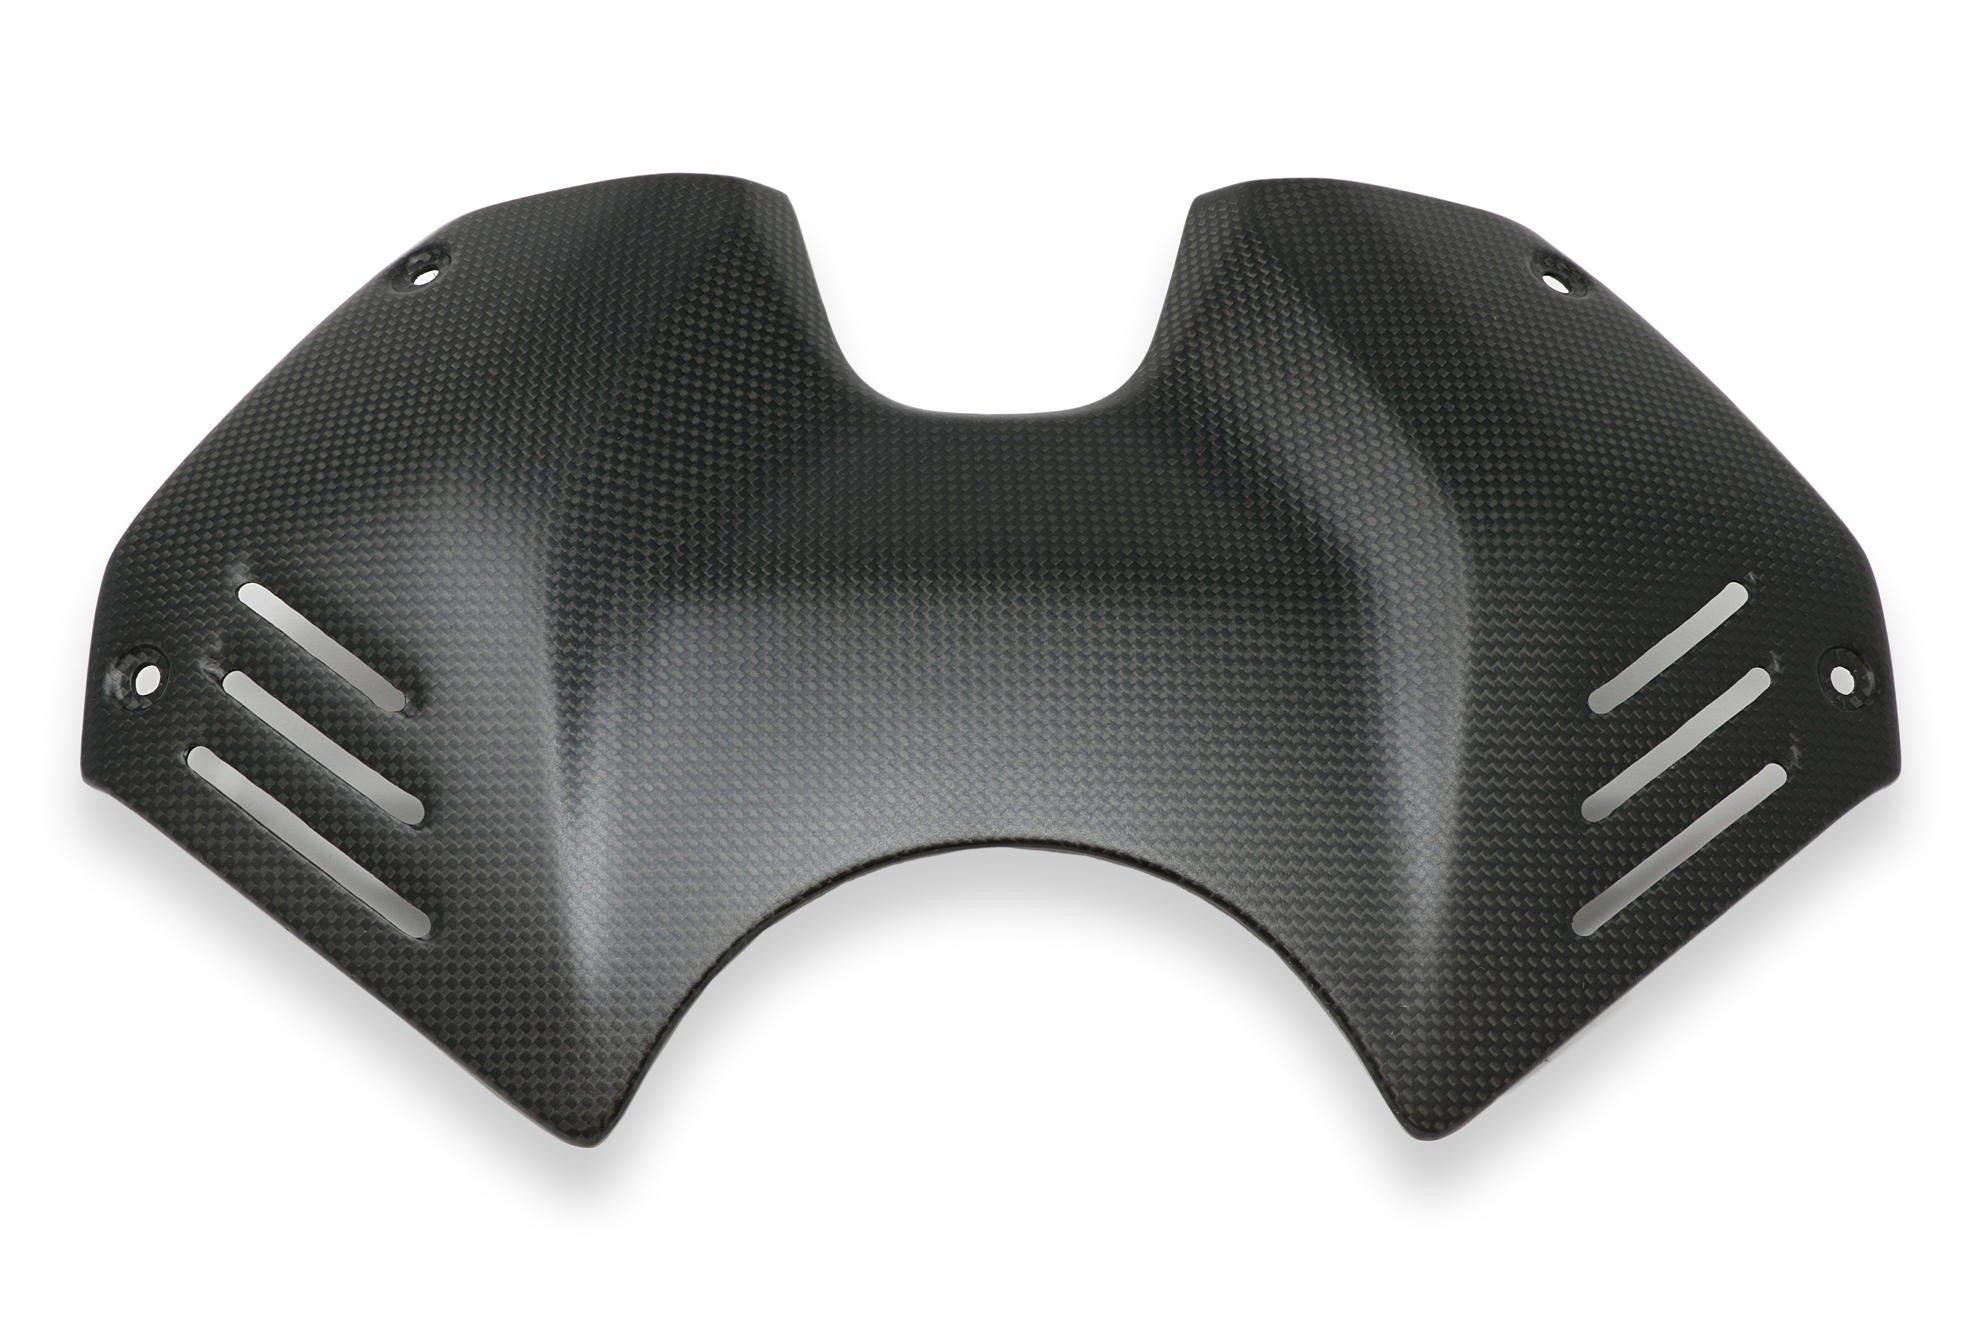 Panigale V4 - Carbon Cover, Carbon Parts, CNC Racing - Averys Motorcycles